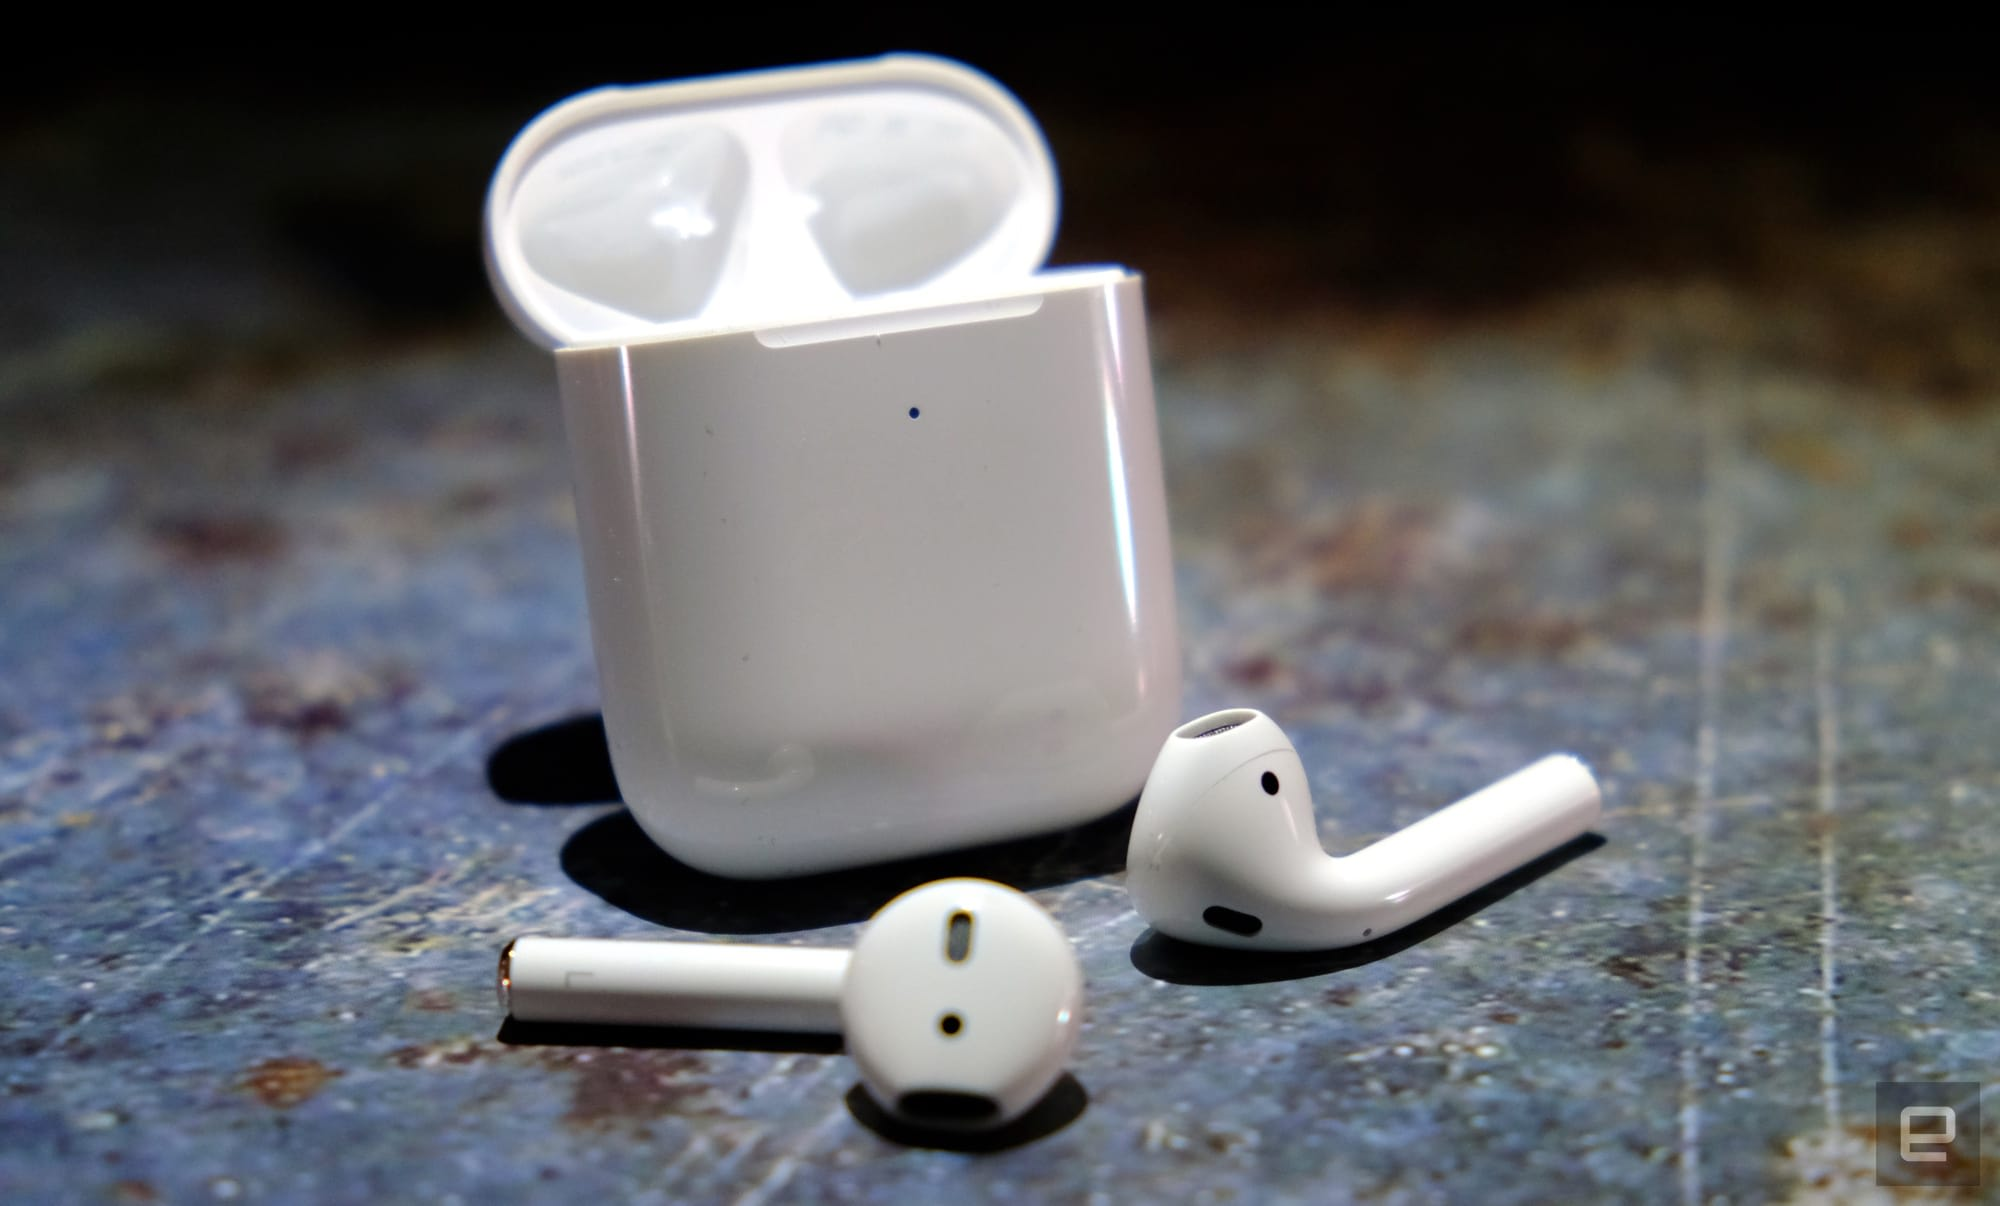 Apple AirPods review (2019): More of the same, but that's OK